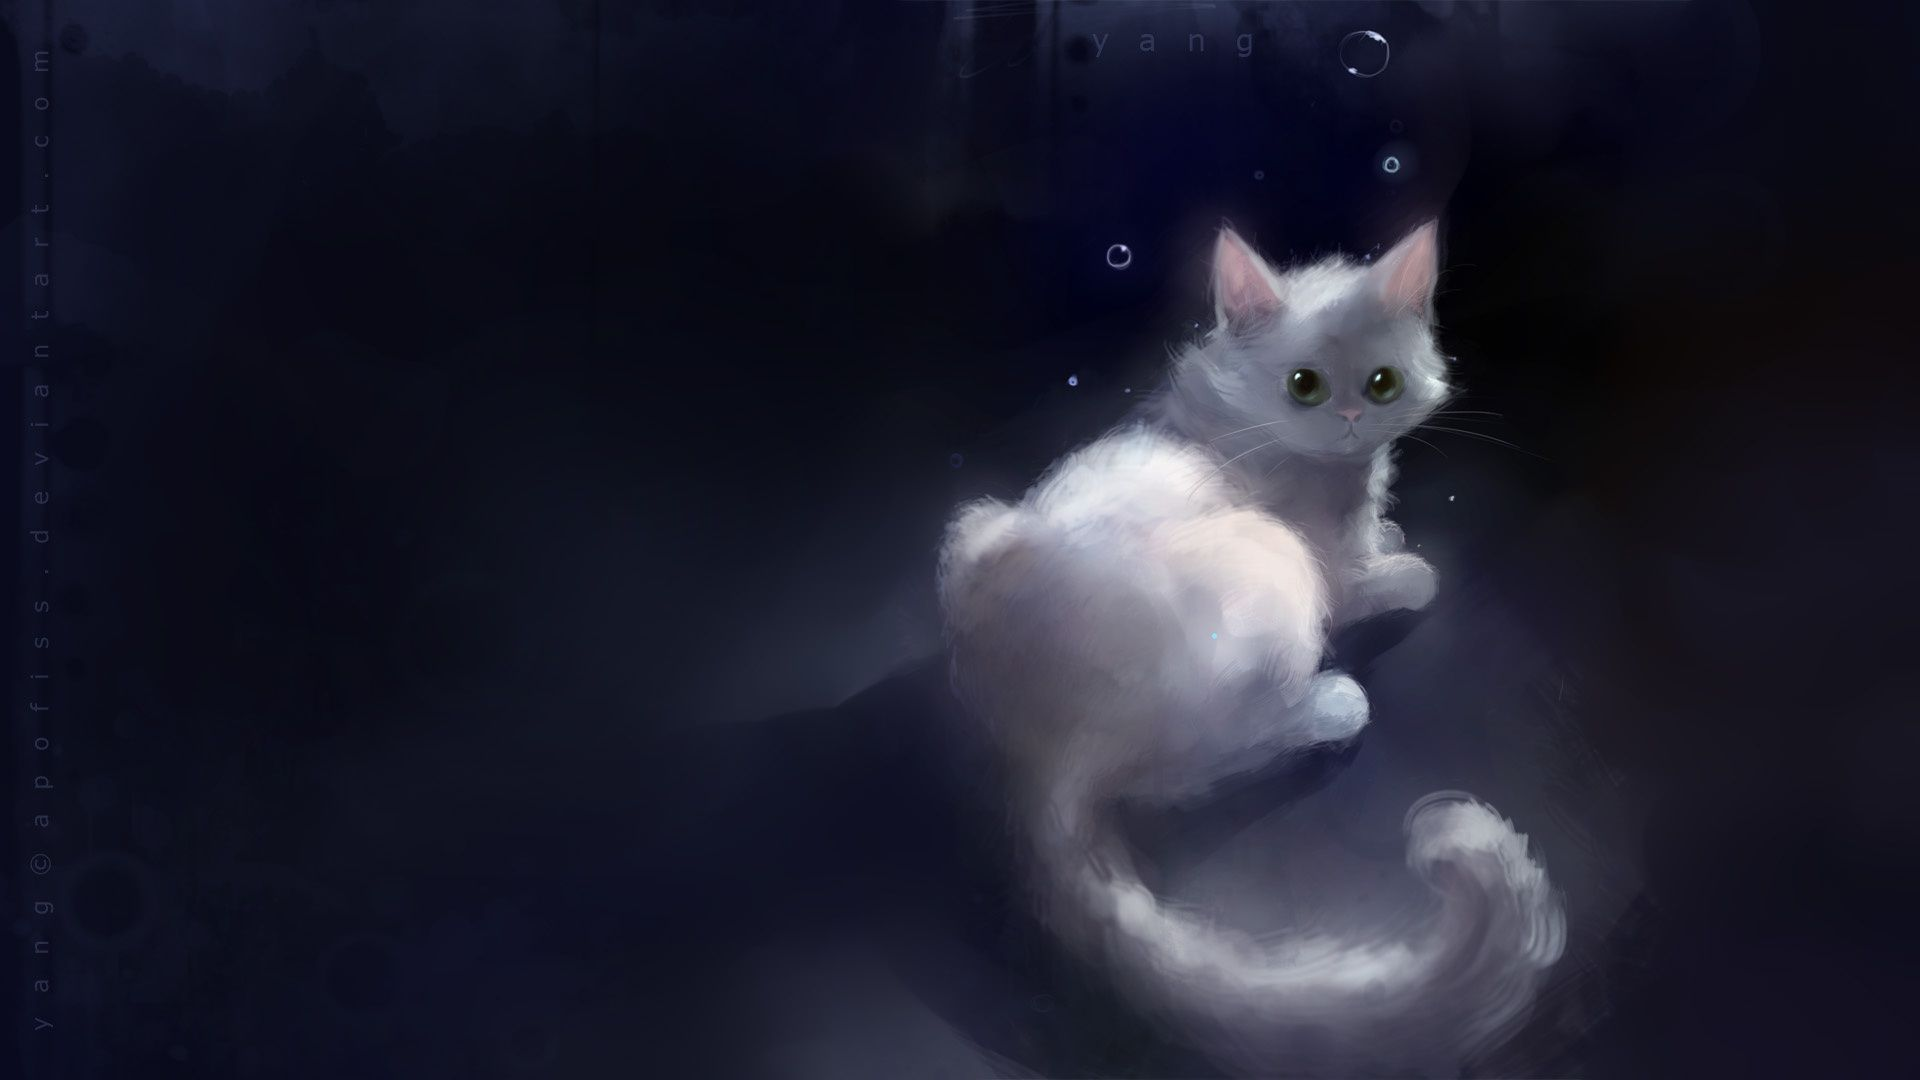 Heart Touching Cuties And Kittens Speed Painting By Apofiss